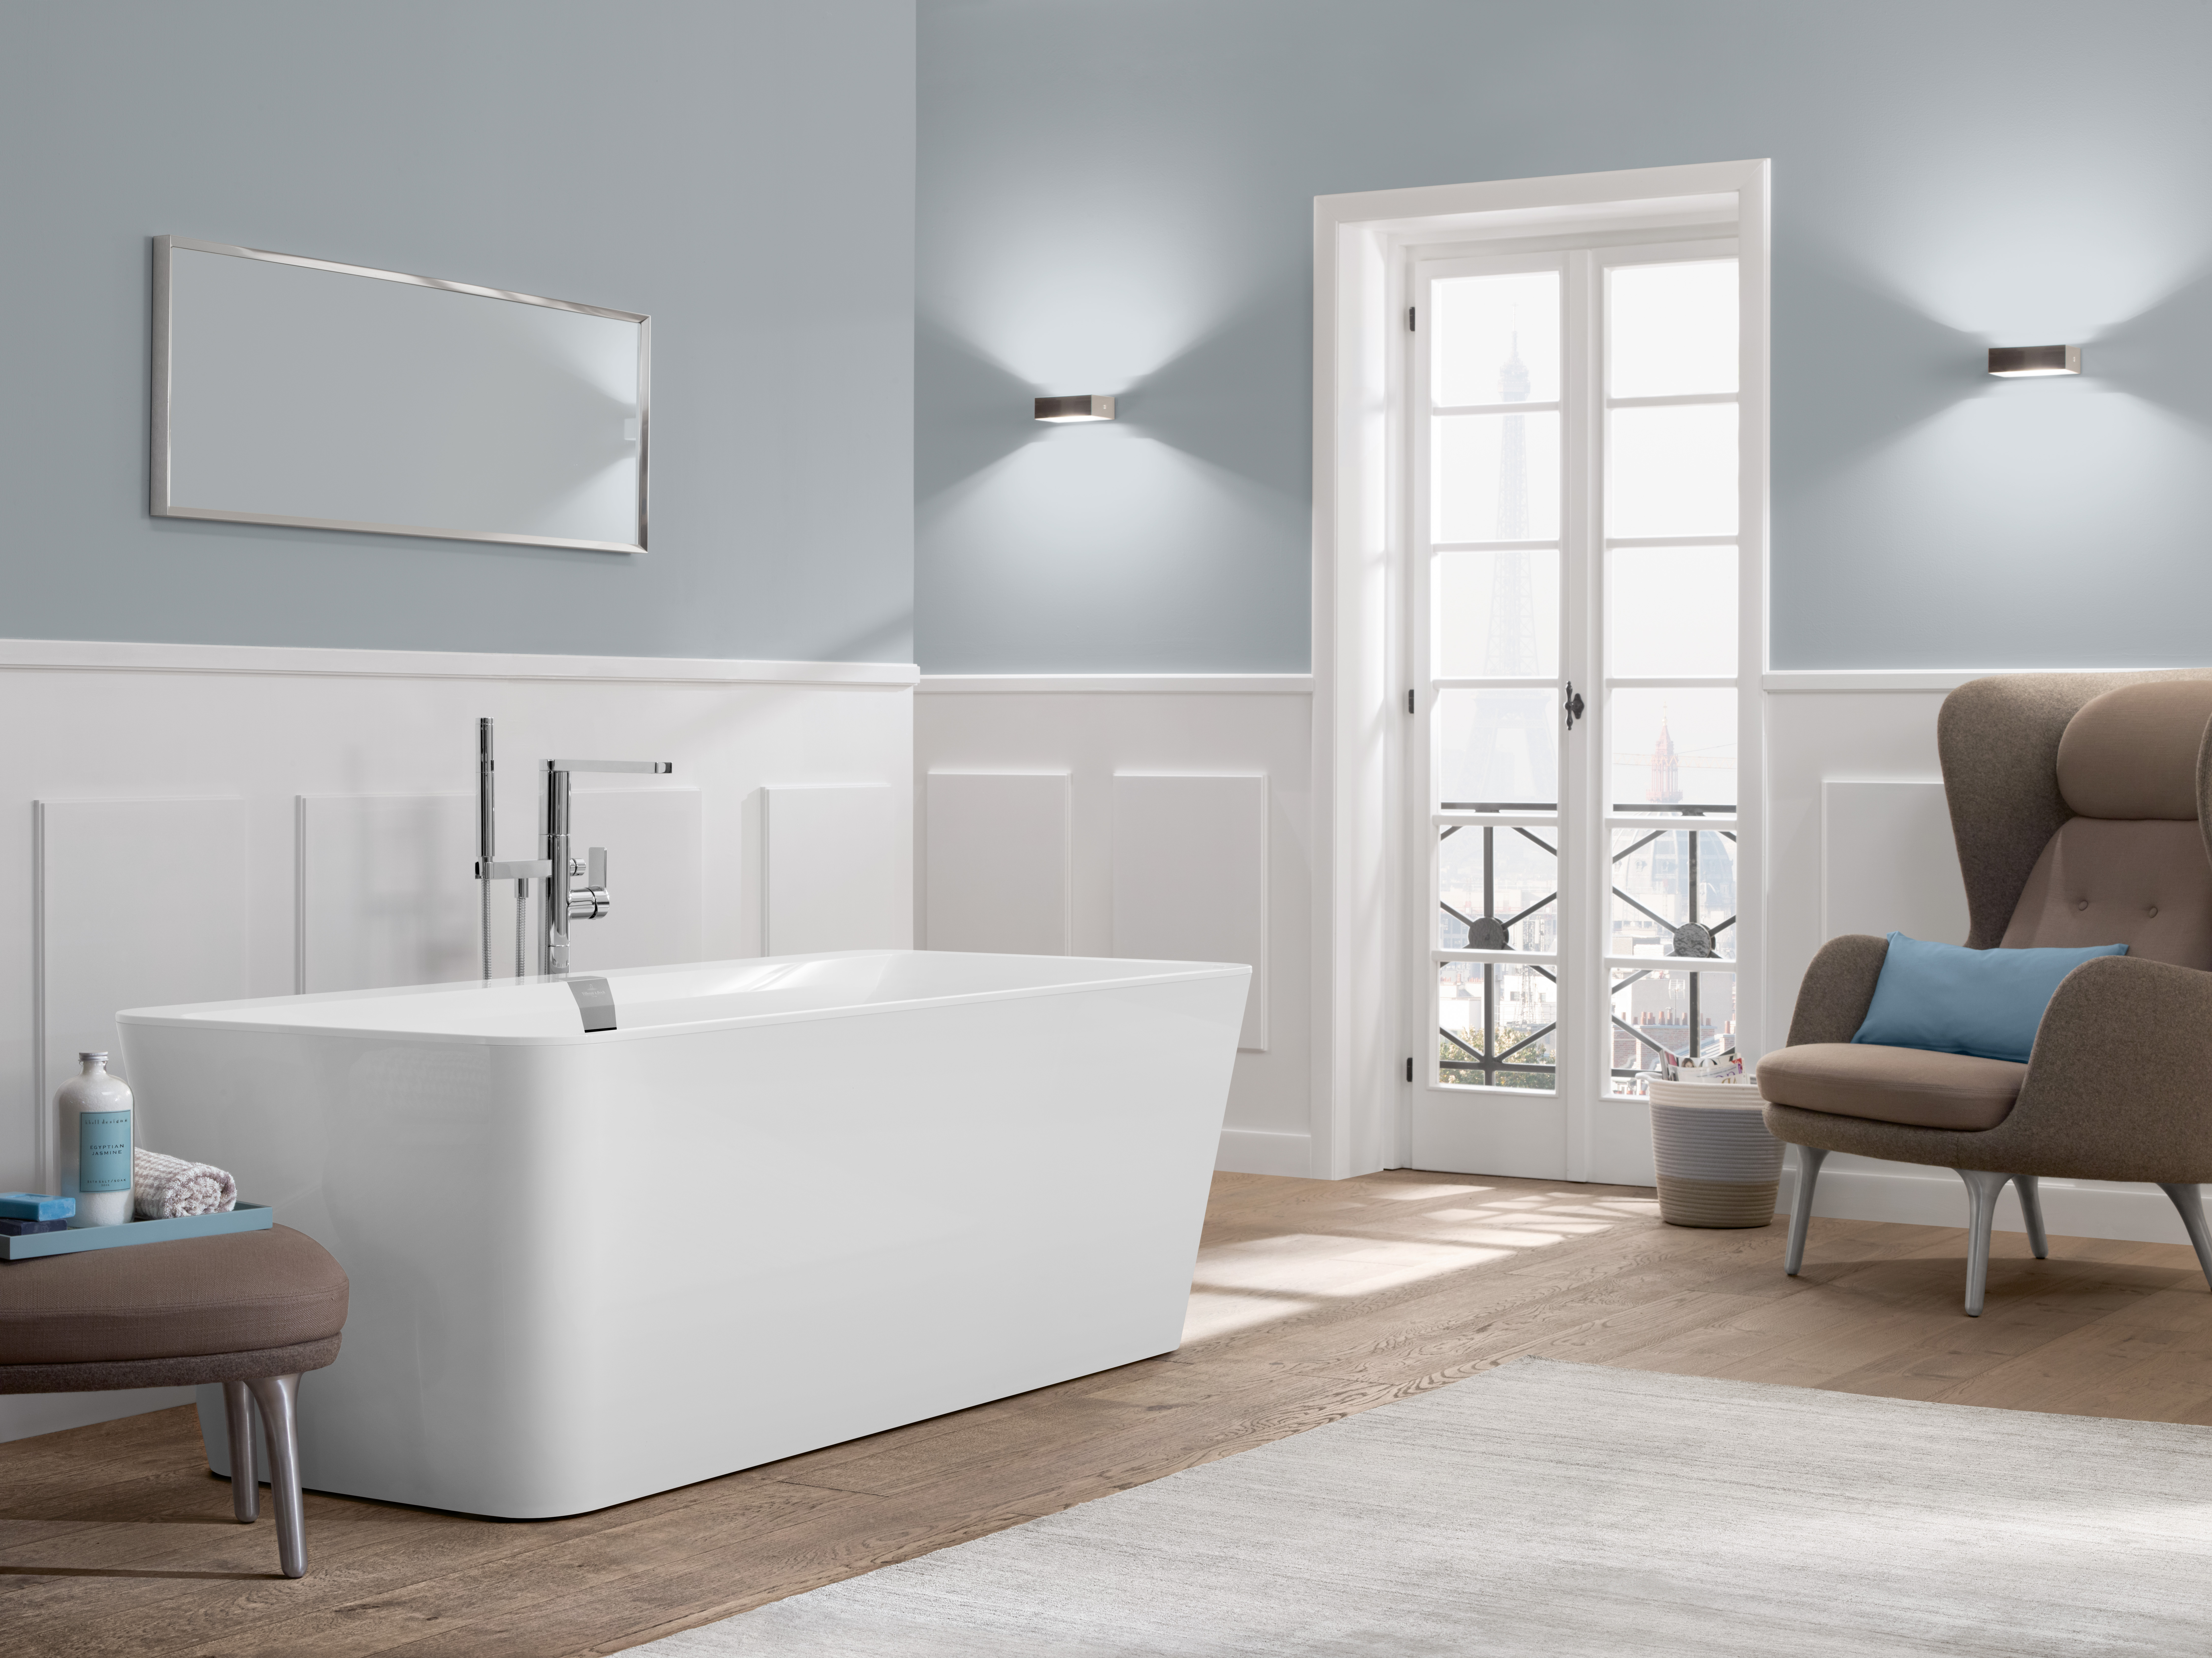 Squaro Edge 12 Bath, Baths, Free-standing baths